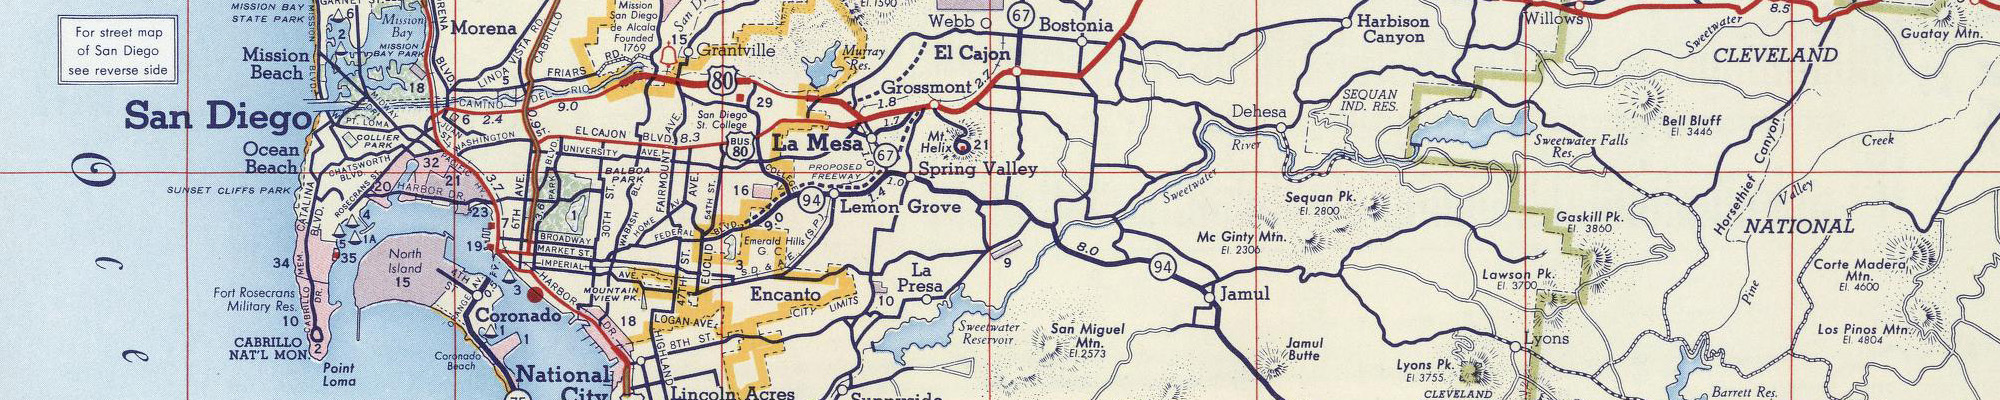 segment of San Diego street map 1956